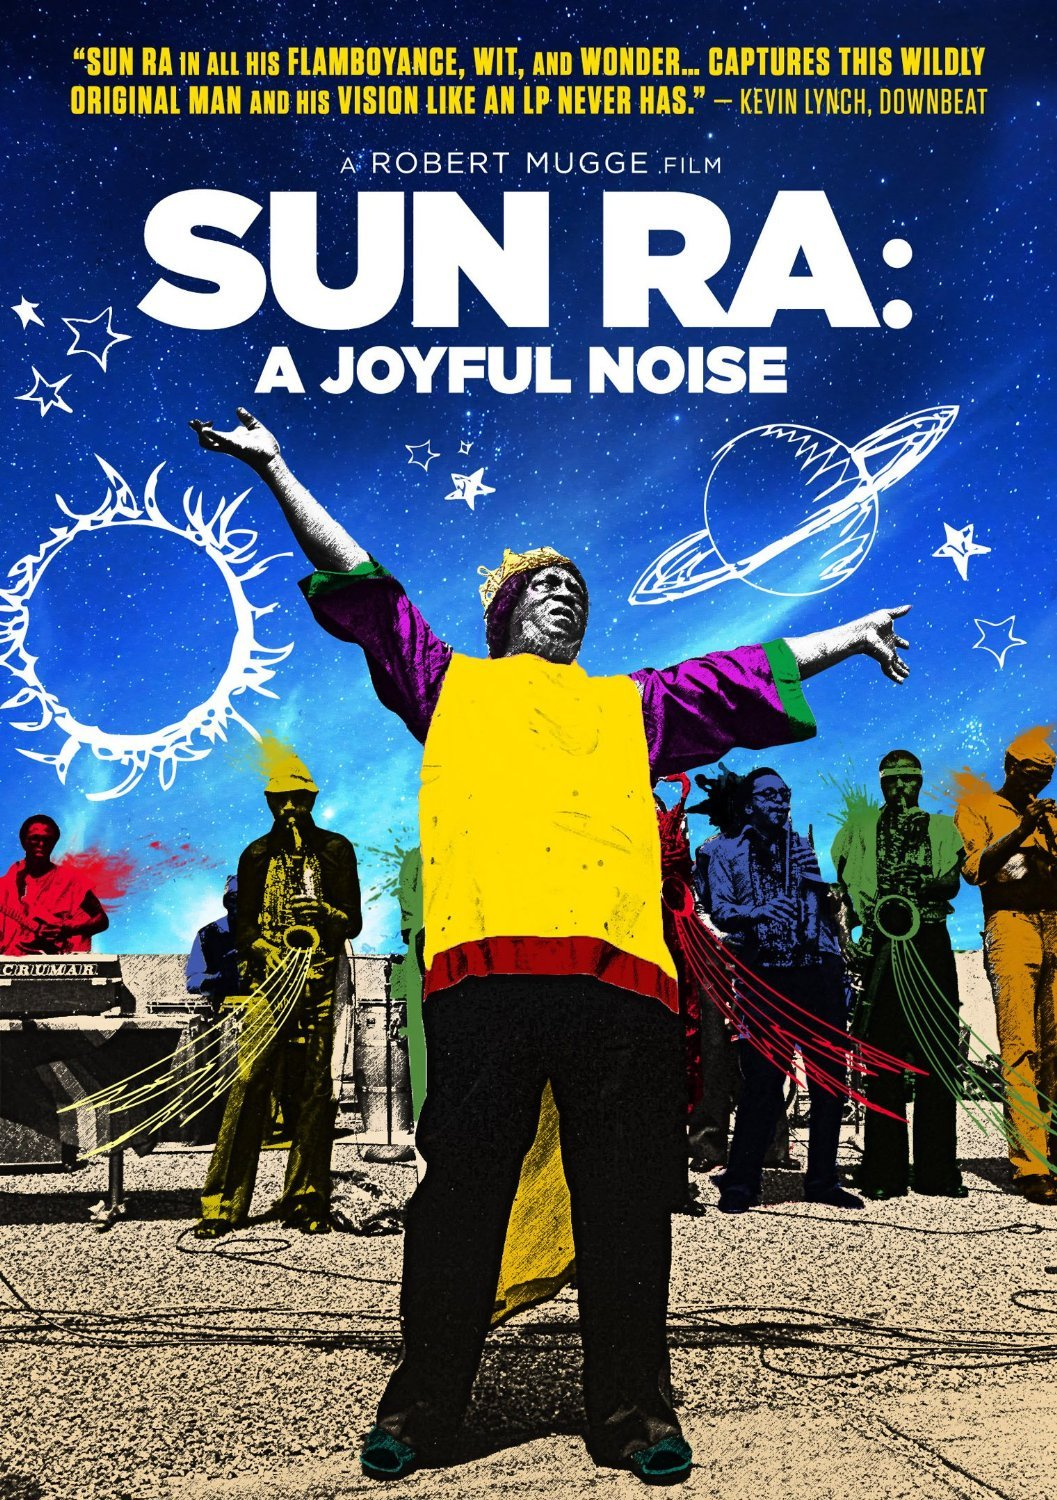 Cover art features Sun Ra standing in colorful clothing with his arms raised towards the sky surrounded by members of his Arkestra.